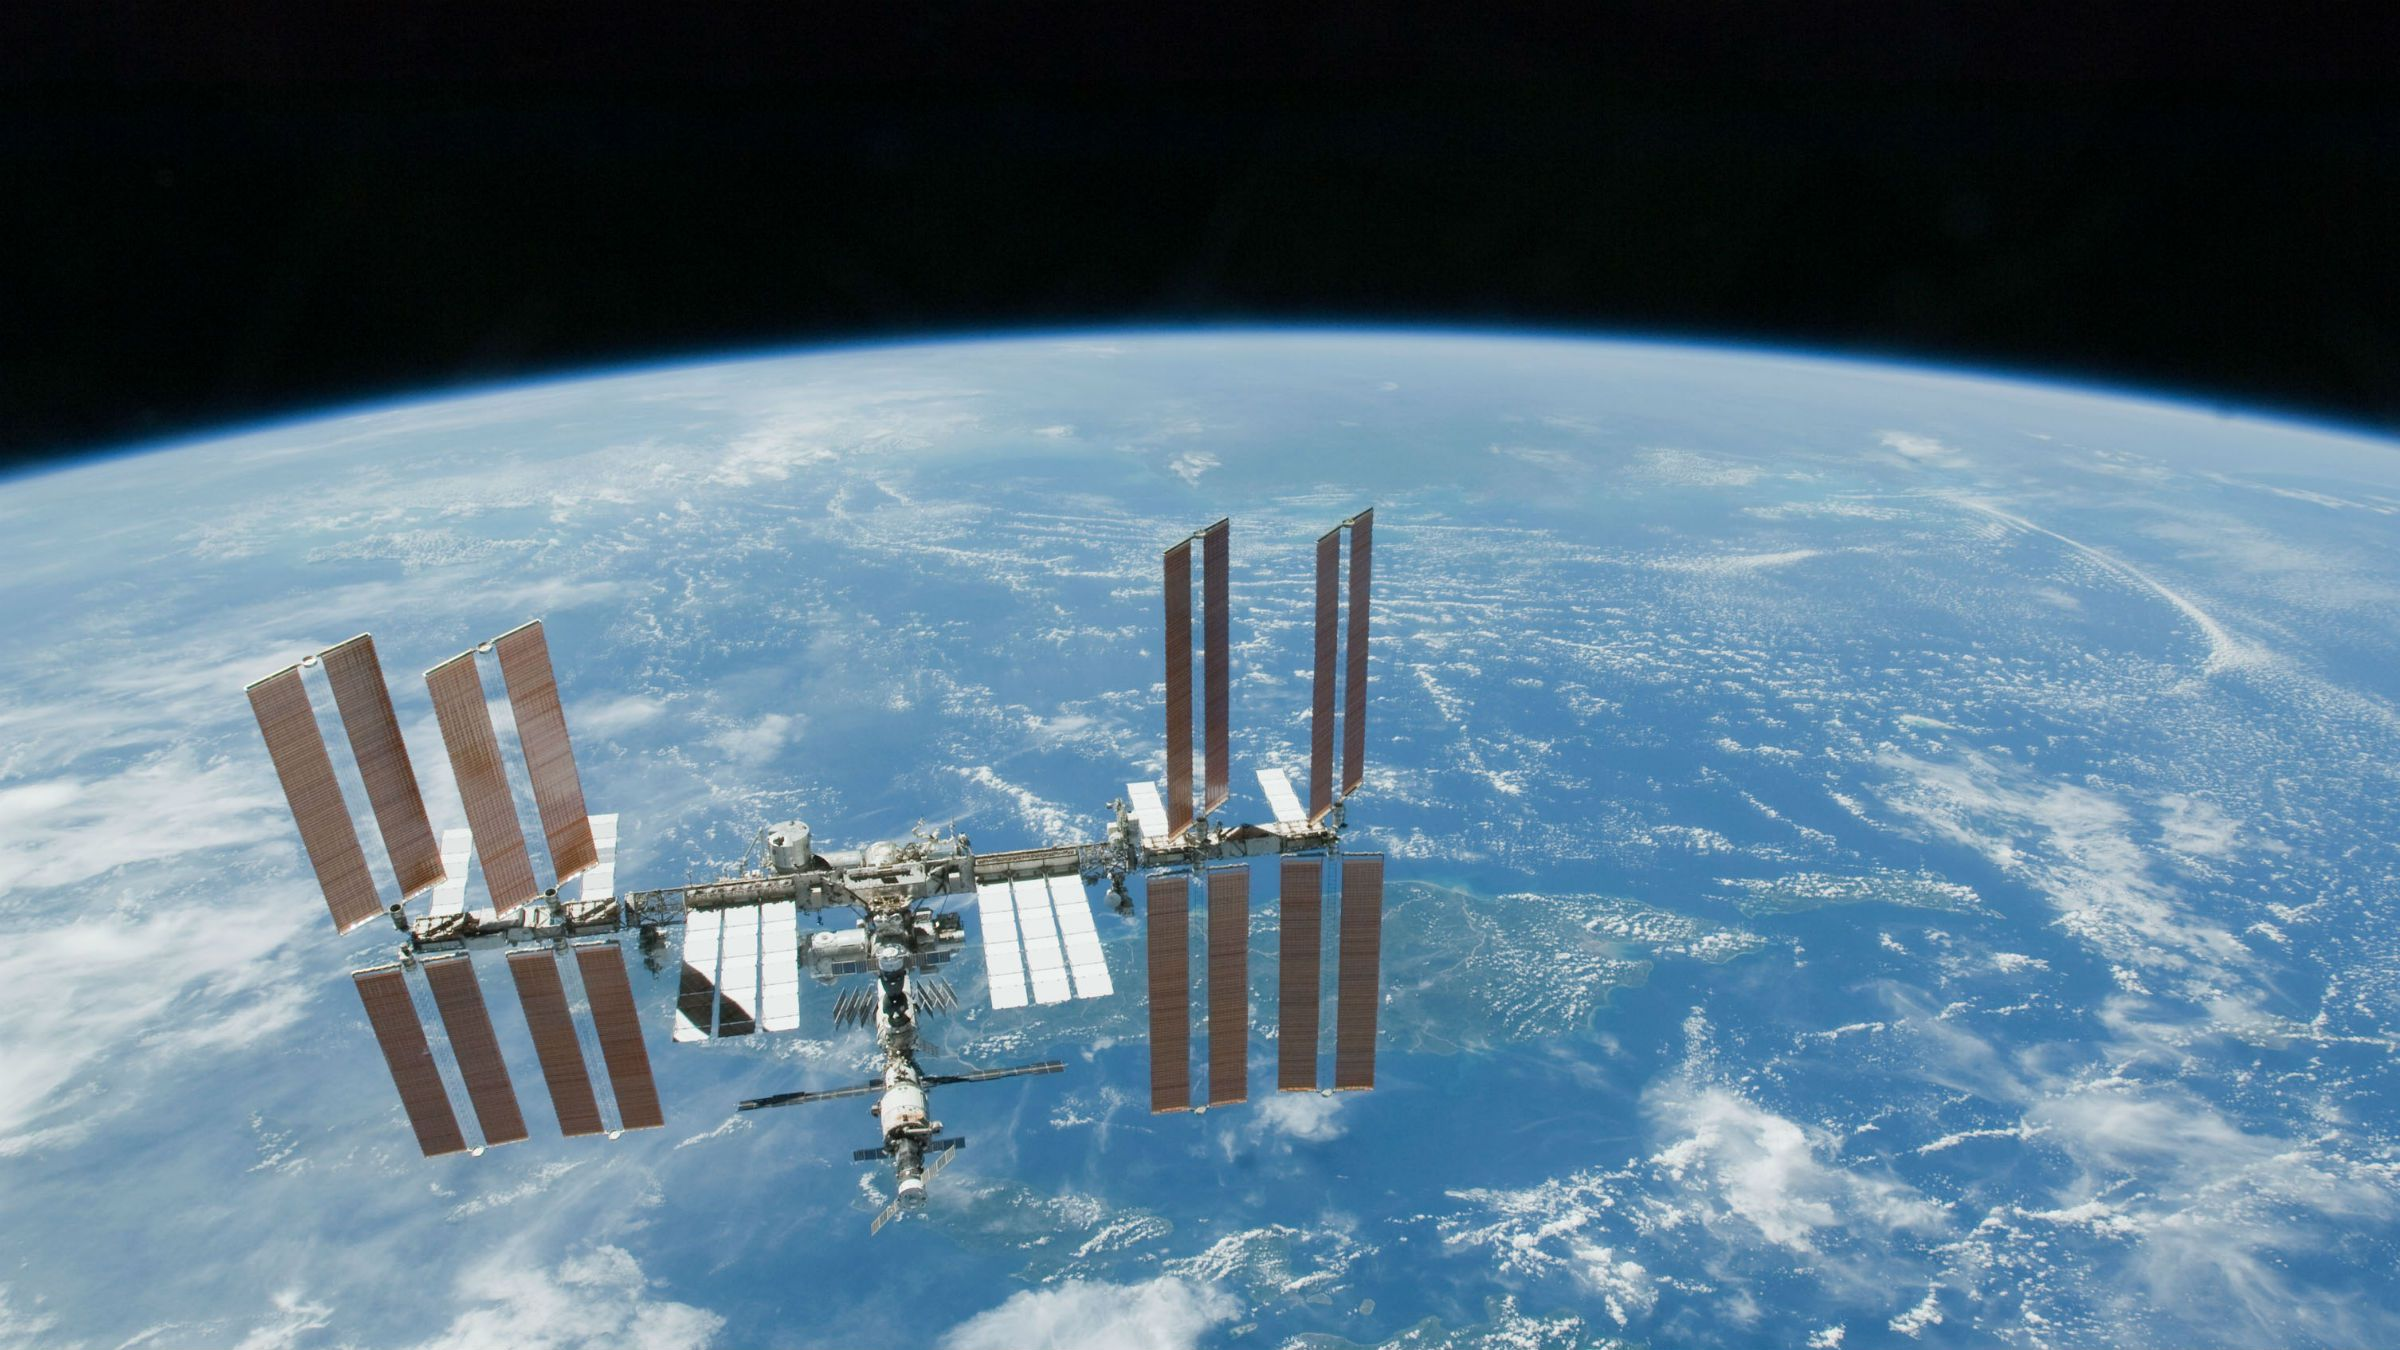 This Feb. 19. 2010 file photo provided by NASA shows the International Space Station with Earth's horizon as a backdrop. Several power systems have been shut down aboard the International Space Station after a cooling system malfunctioned. NASA says in a posting on its website that one of two cooling loops aboard the space station was shut down Saturday, July 31, 2010. A module that pumps ammonia coolant to prevent equipment from overheating was still shut down early Sunday, Aug. 1. (AP Photo/NASA, File